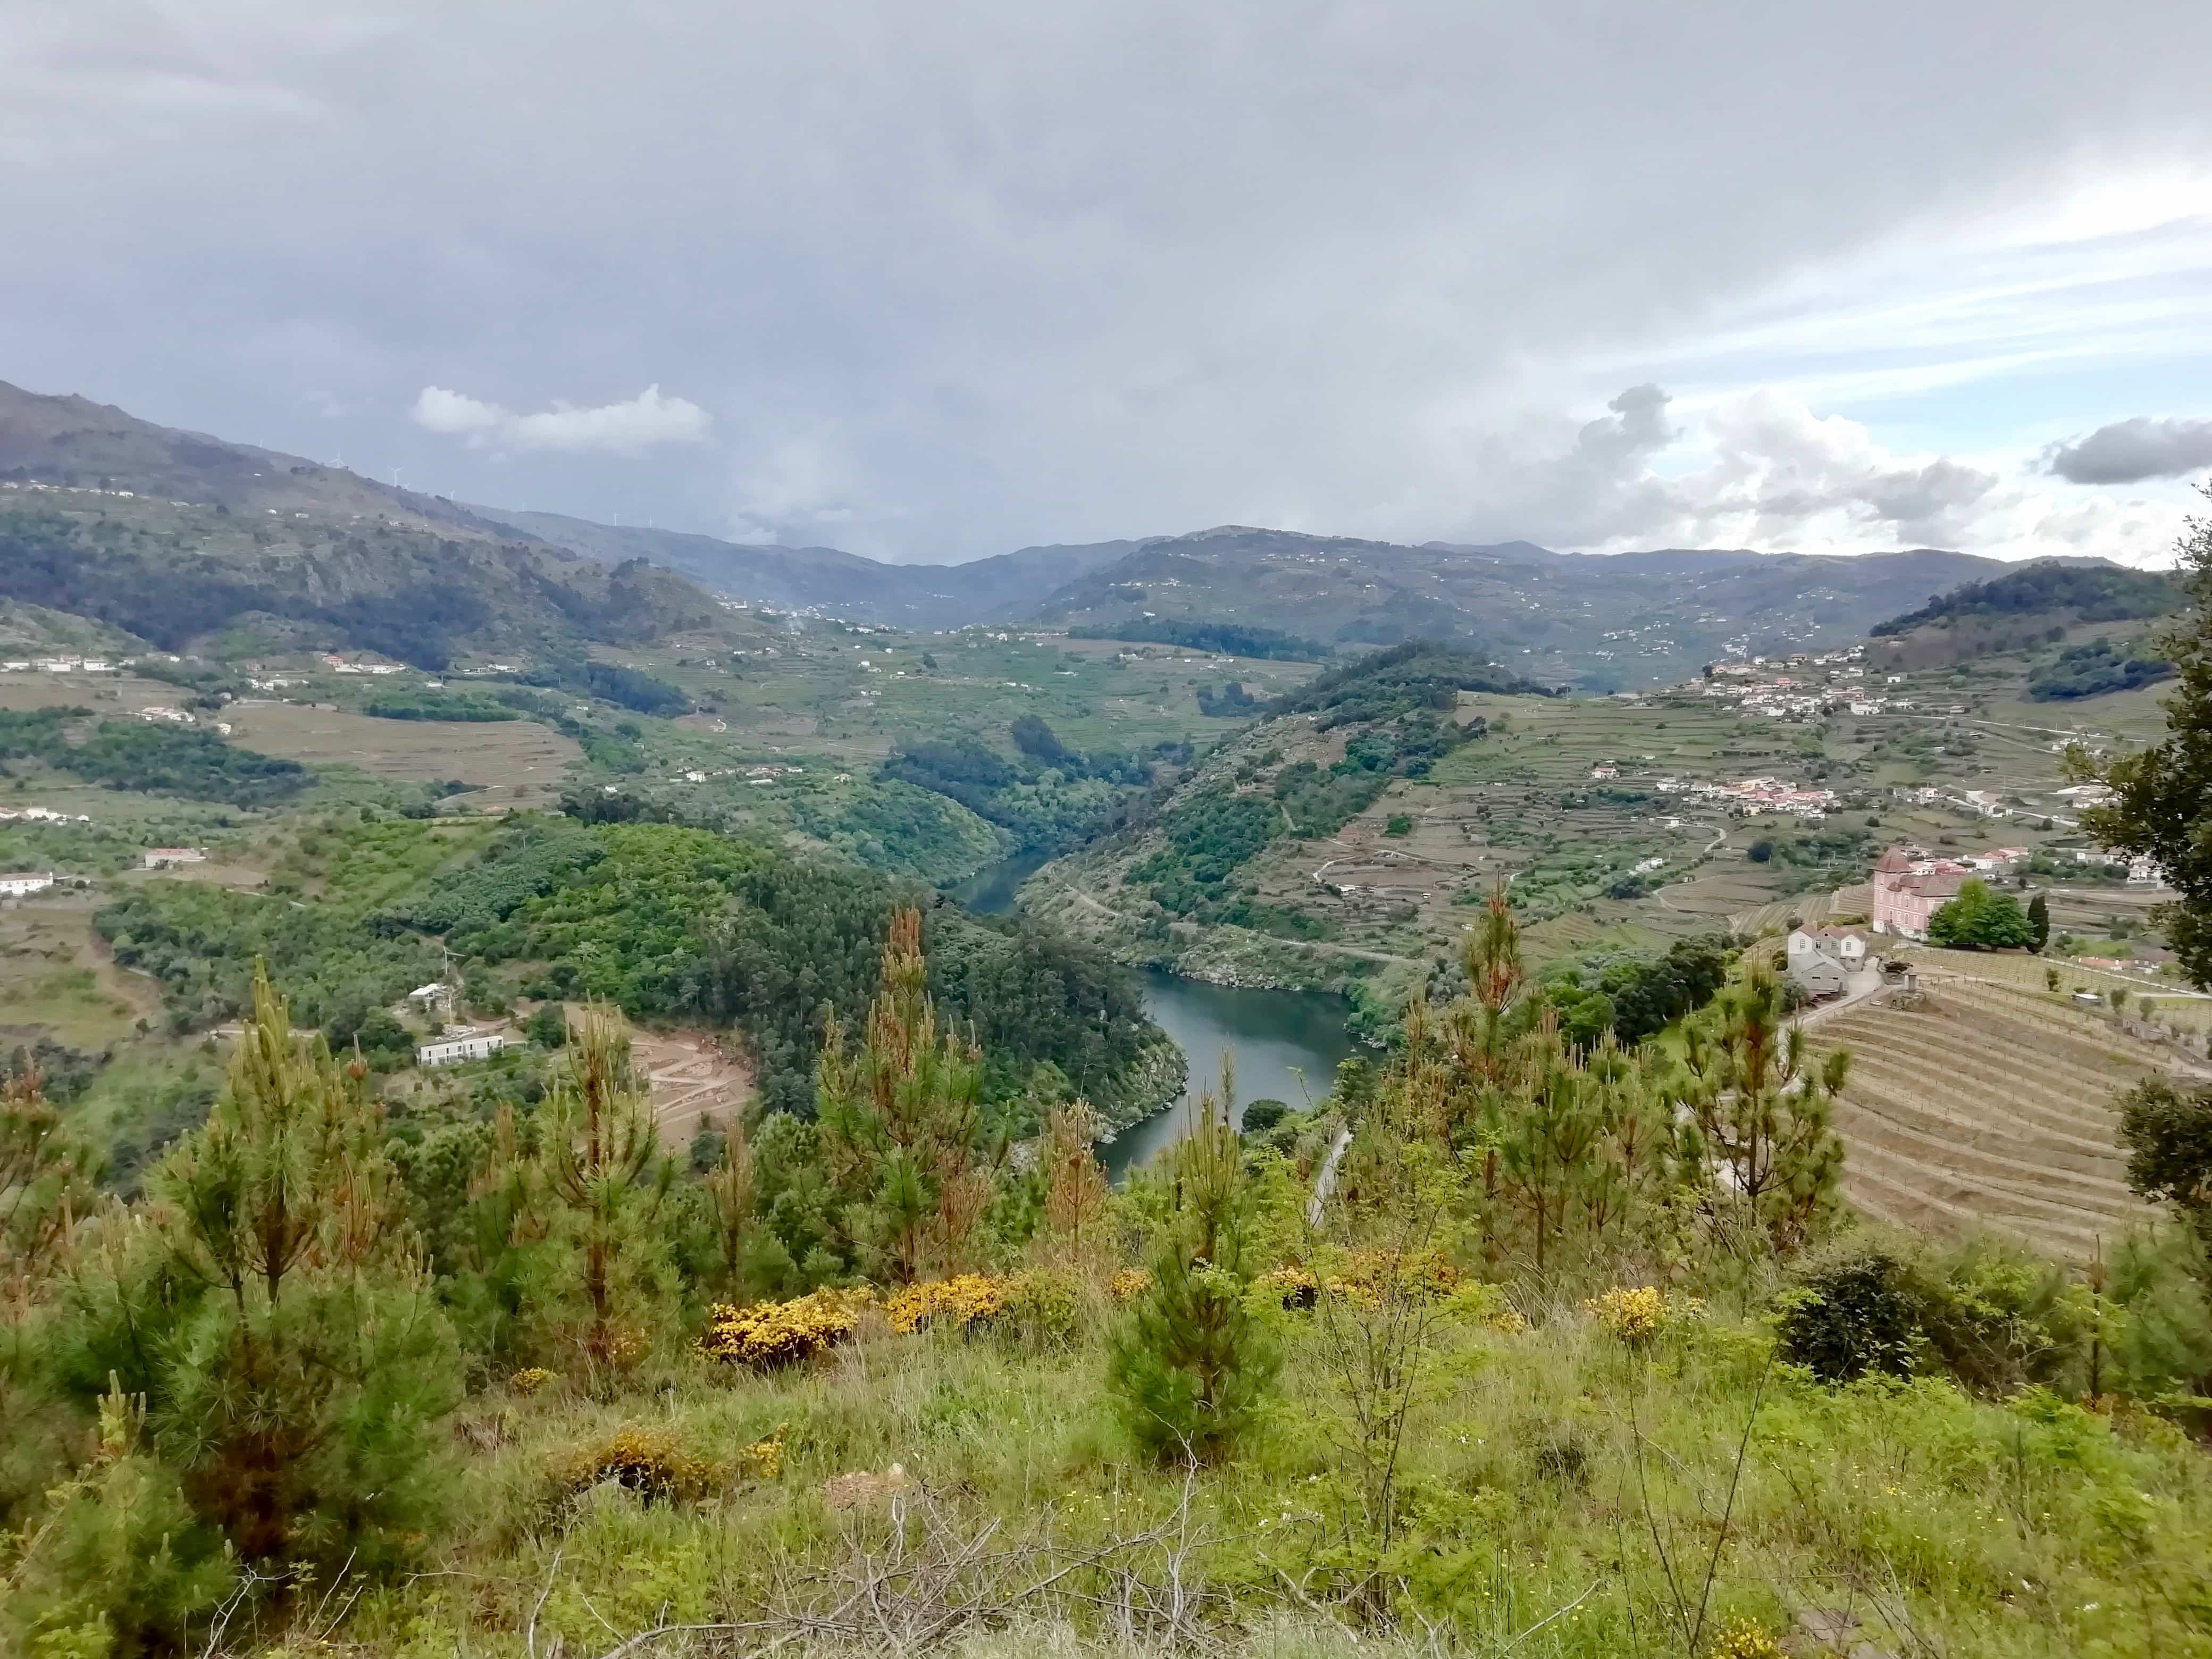 View of fields and the river in the Douro Valley in Portugal